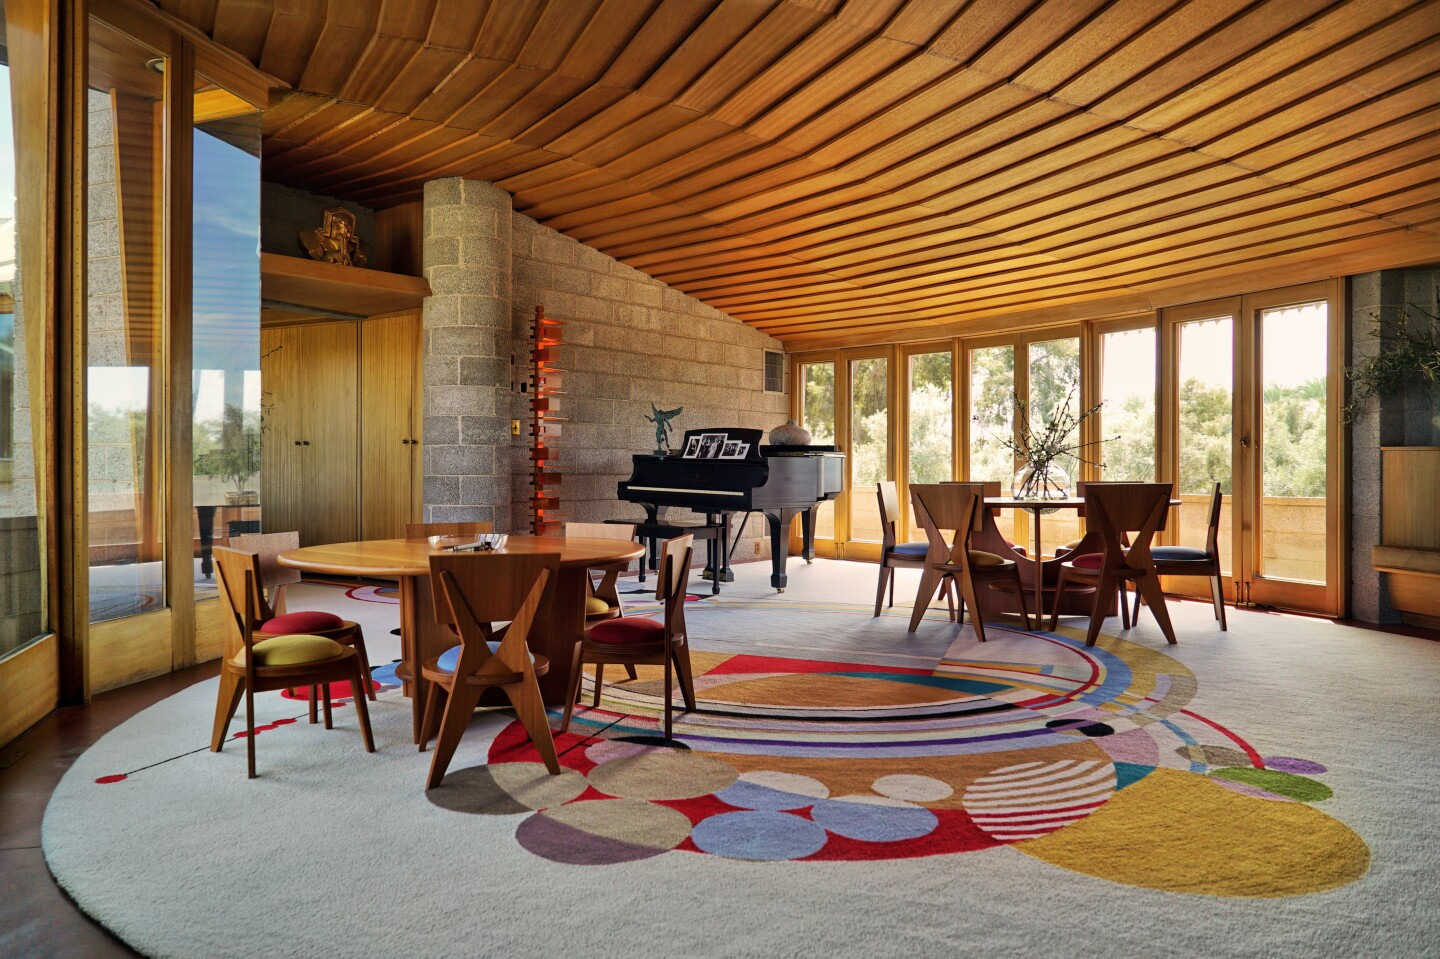 Spanning six acres, the estate centers on a spiral-shaped home of roughly 2,200 square feet.